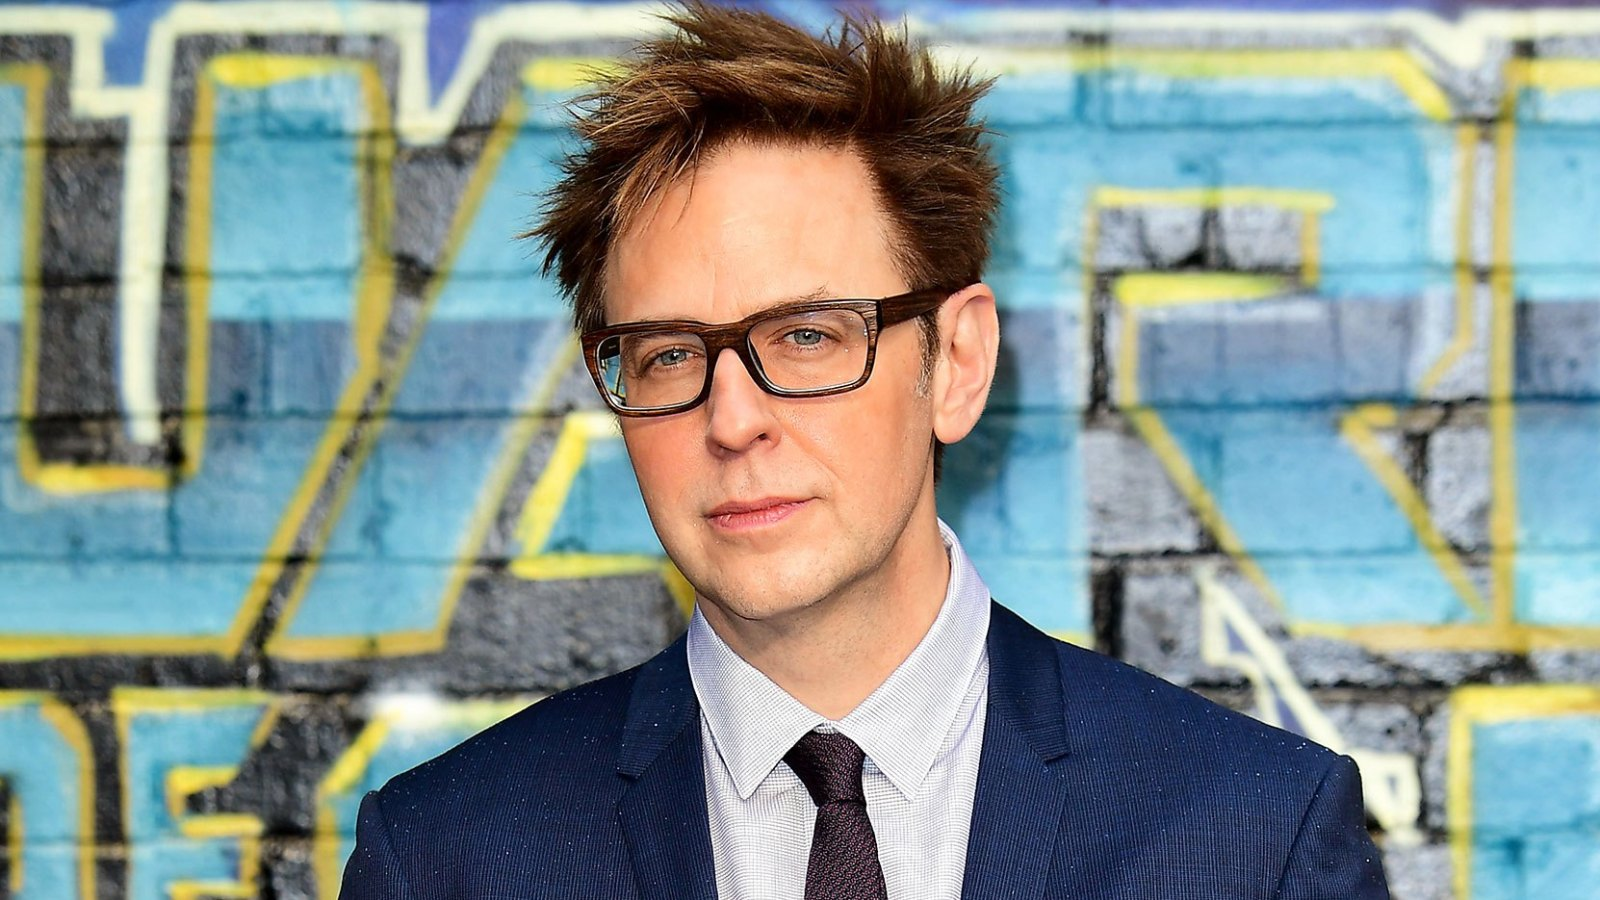 A shocking twist was revealed today in the James Gunn drama at Marvel Studios.